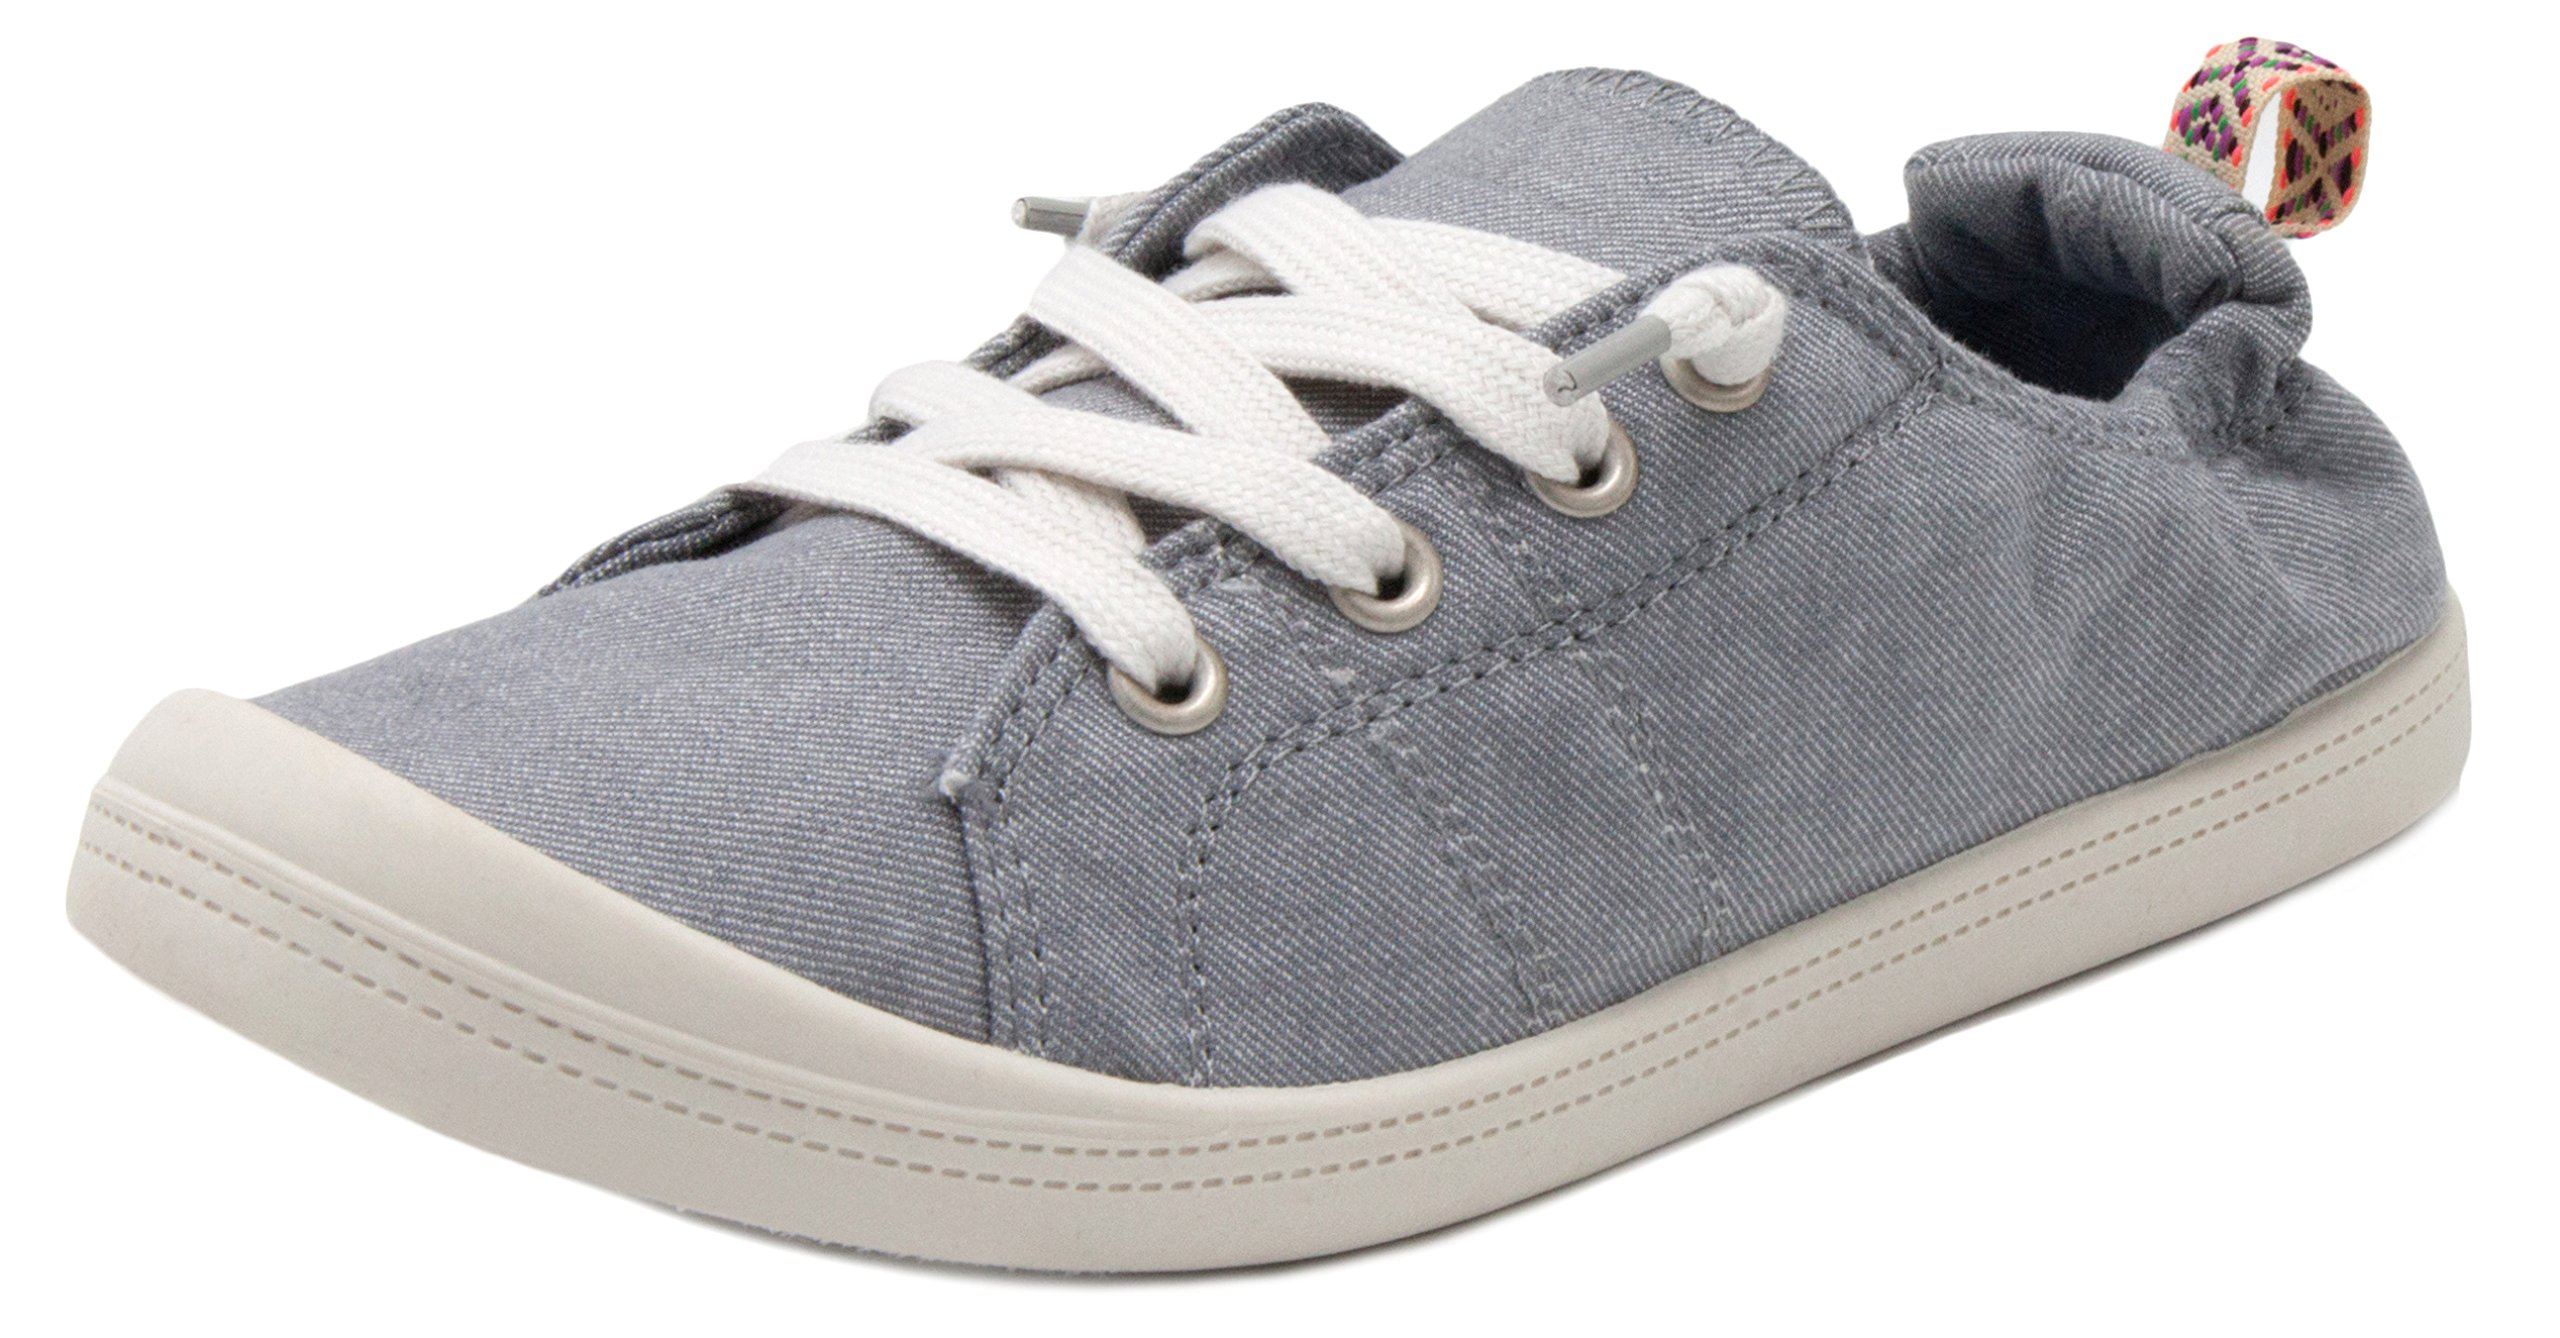 Rampage Women's Grateful Comfortable Slip On Sneaker Shoe with No-Tie Laces and Cute Design 7.5 Grey Wash ed Cotton